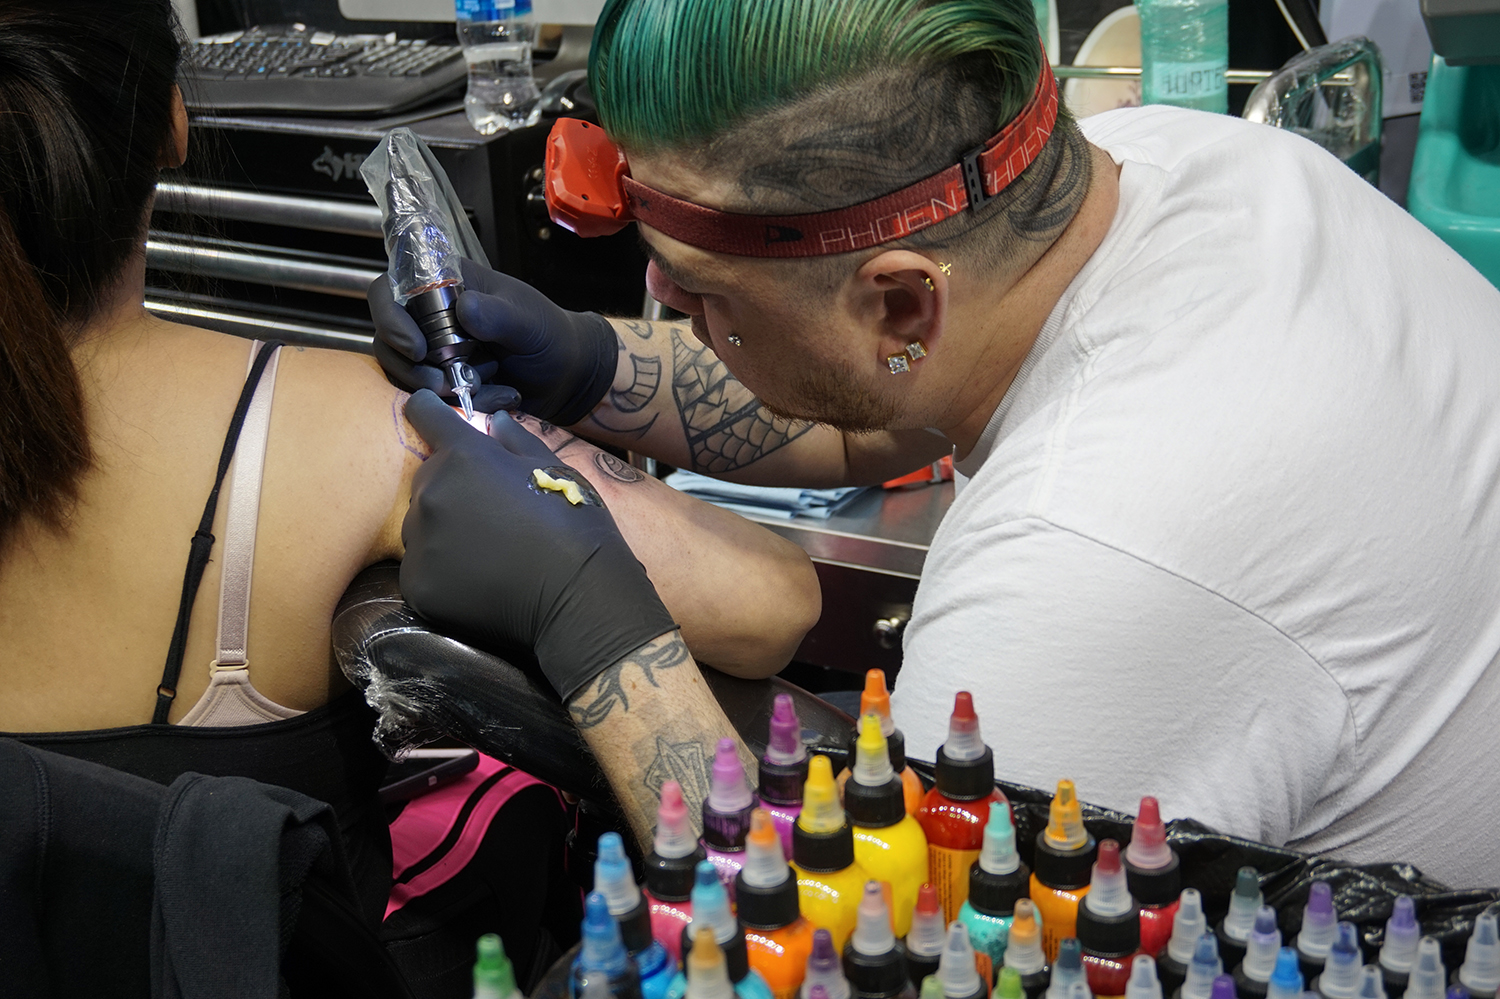 green haired jonny rocket tattoos, inking sleeve